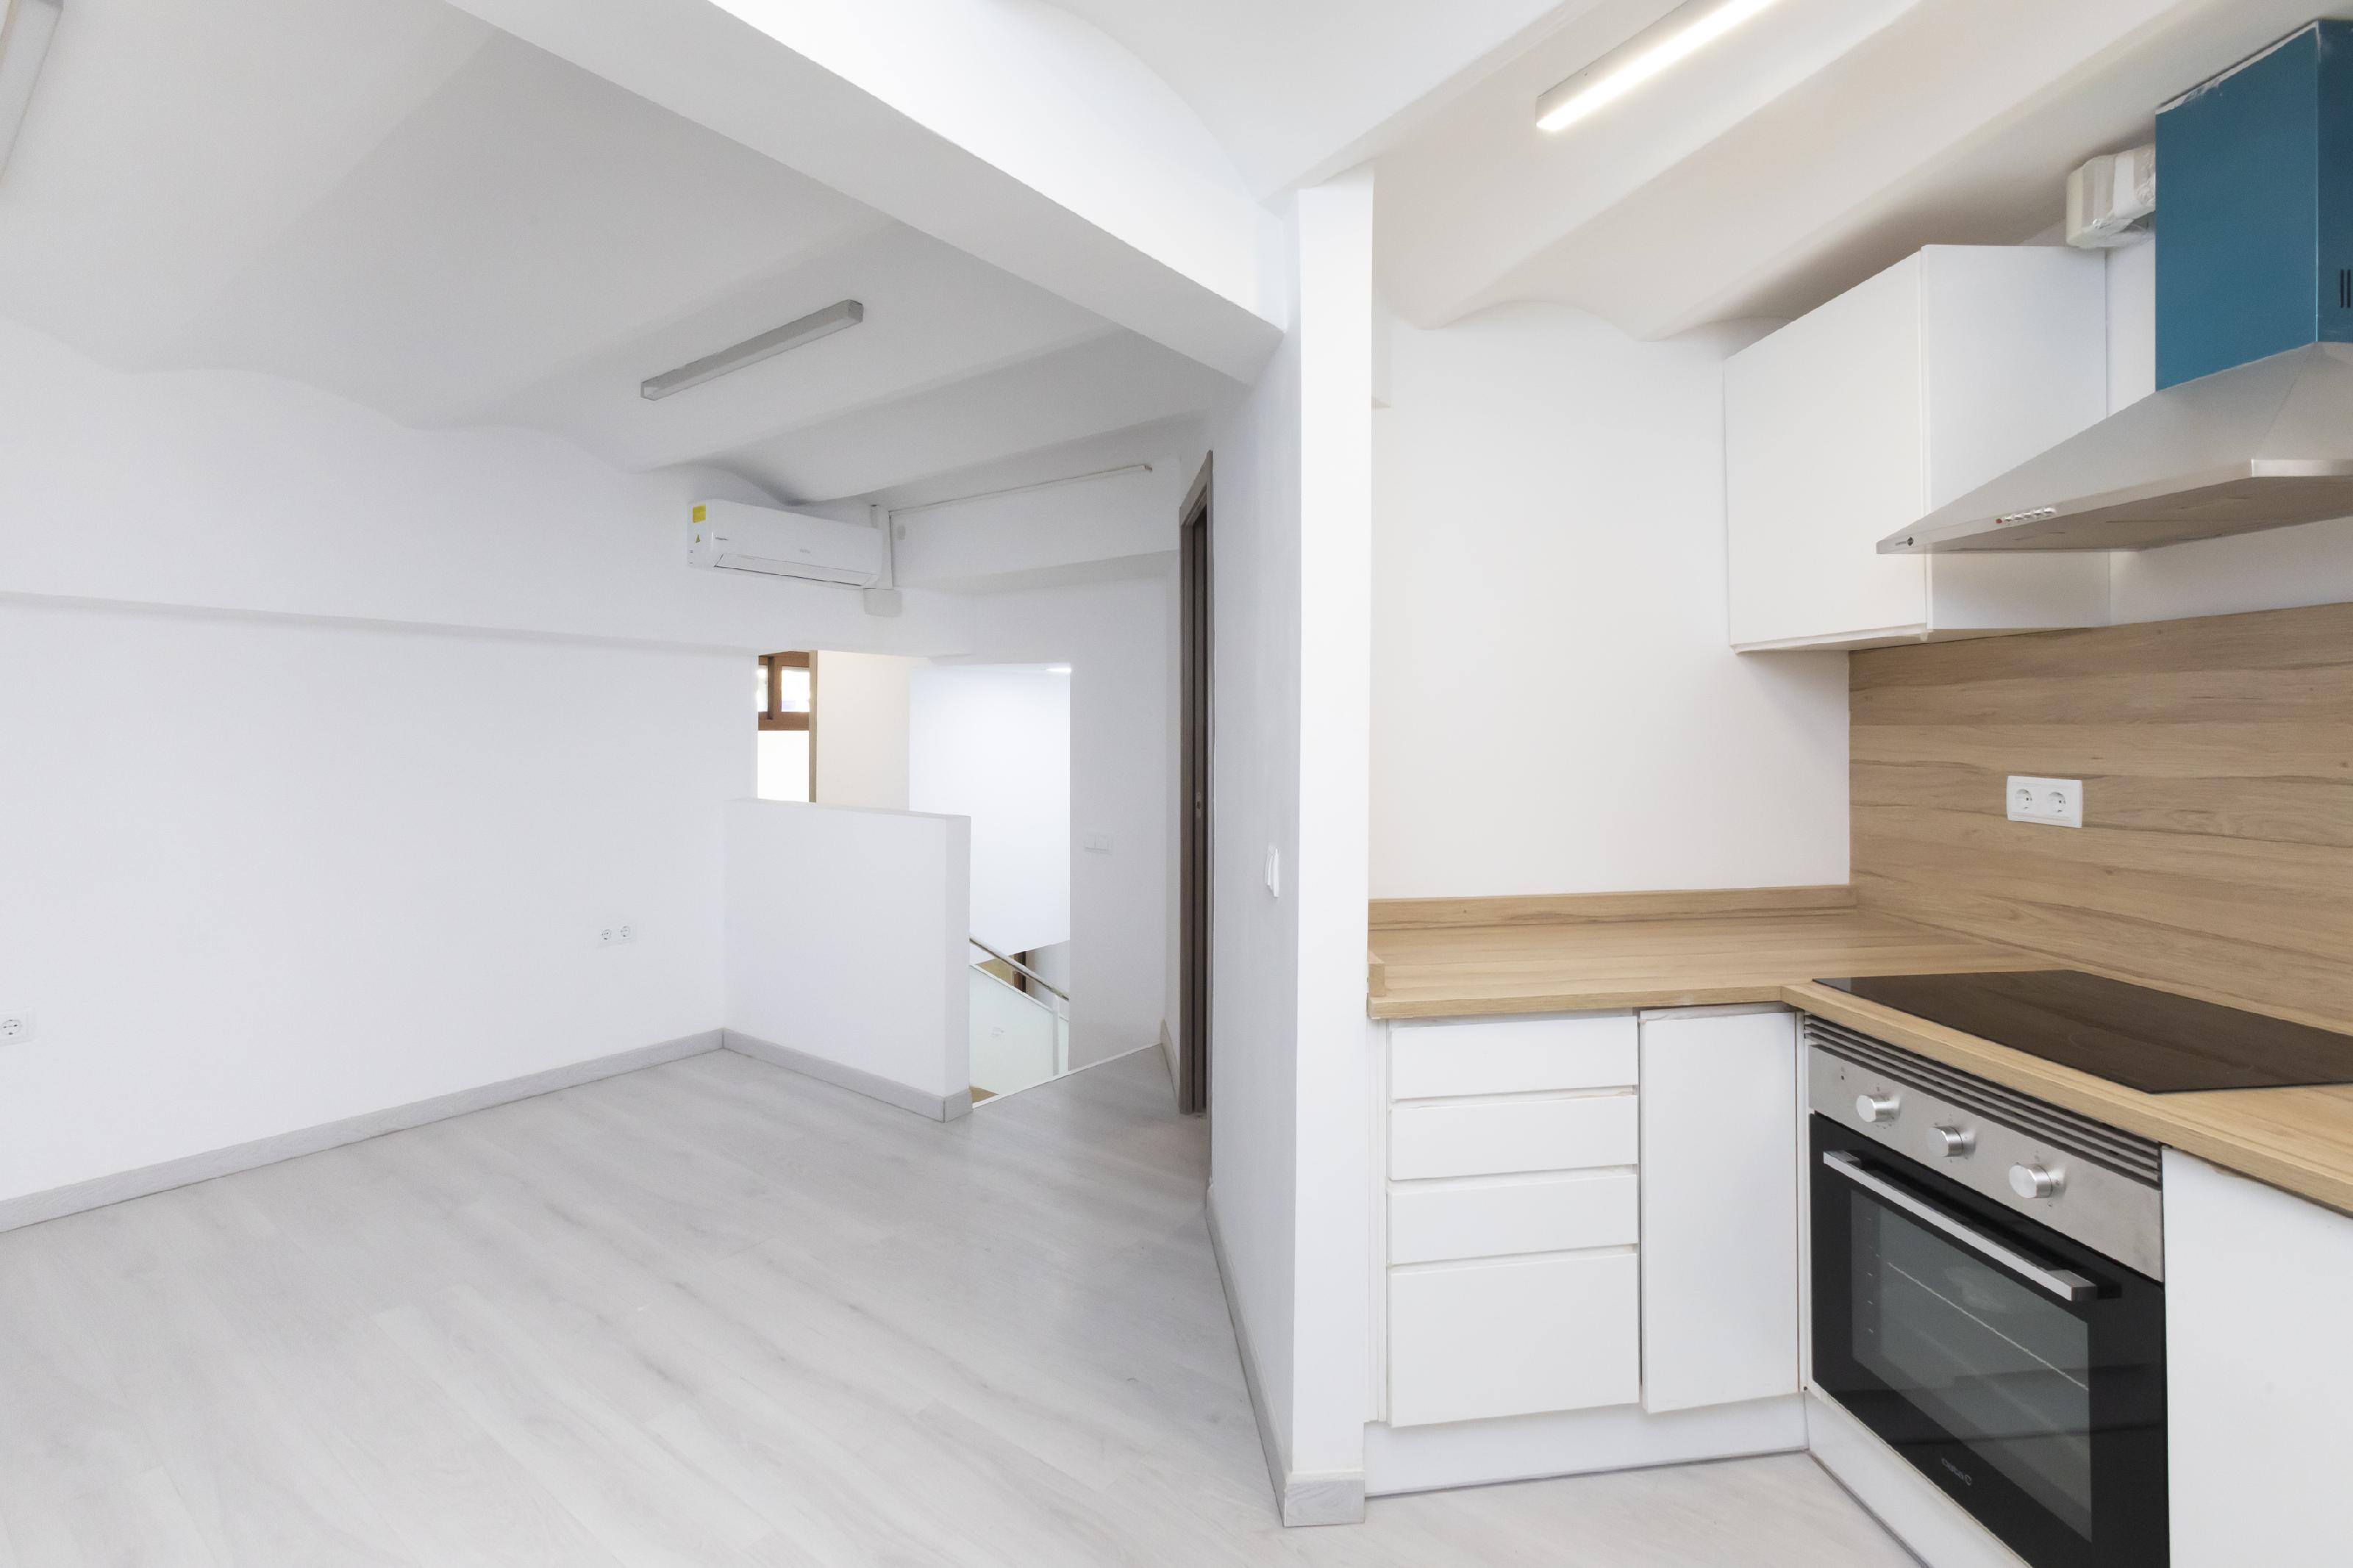 242978 Flat for sale in Gràcia, Camp Grassot and Gràcia Nova 1